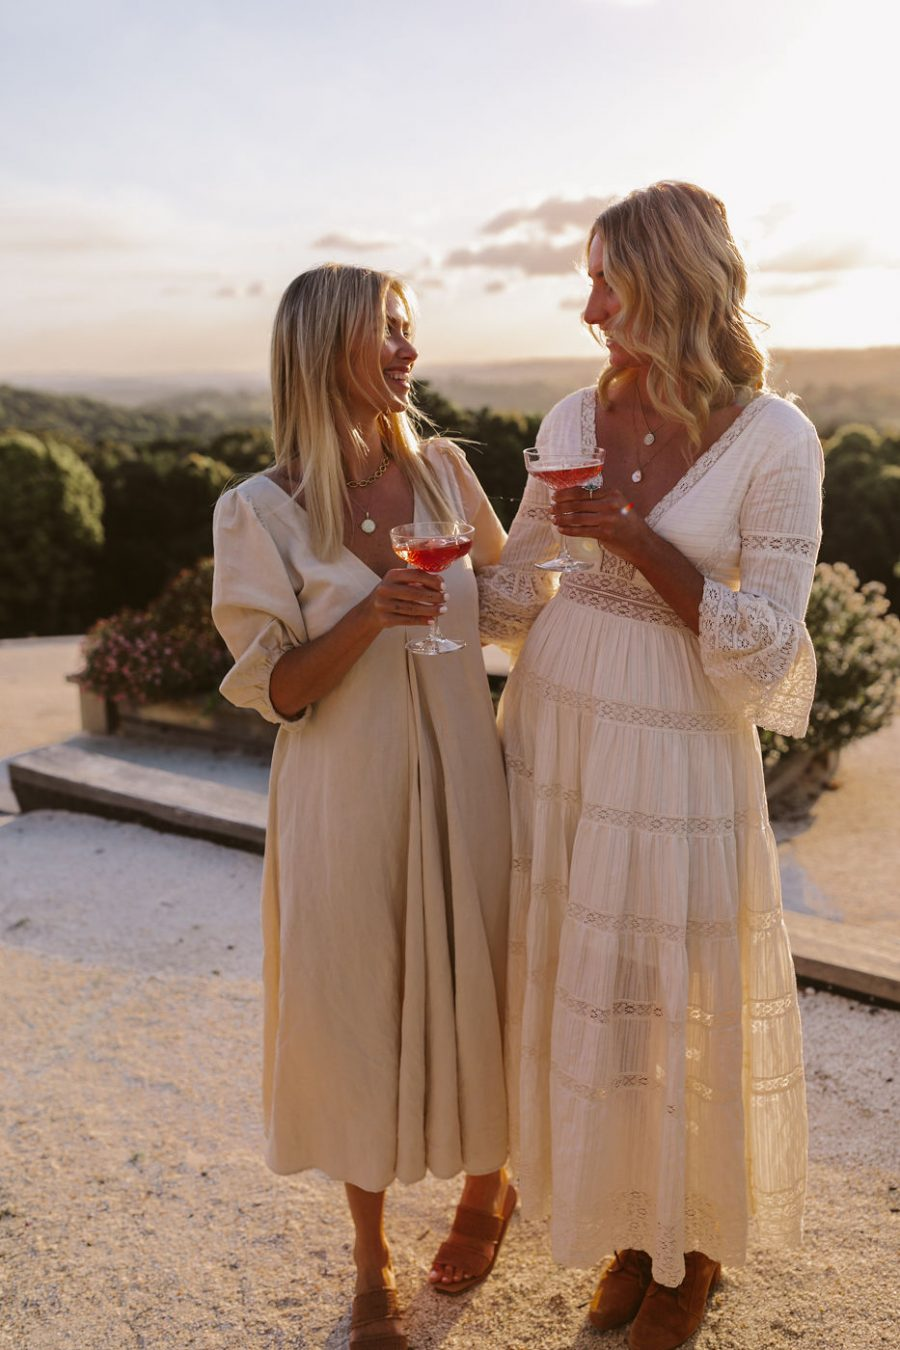 Ladies cheers with cocktail with sunset in background.